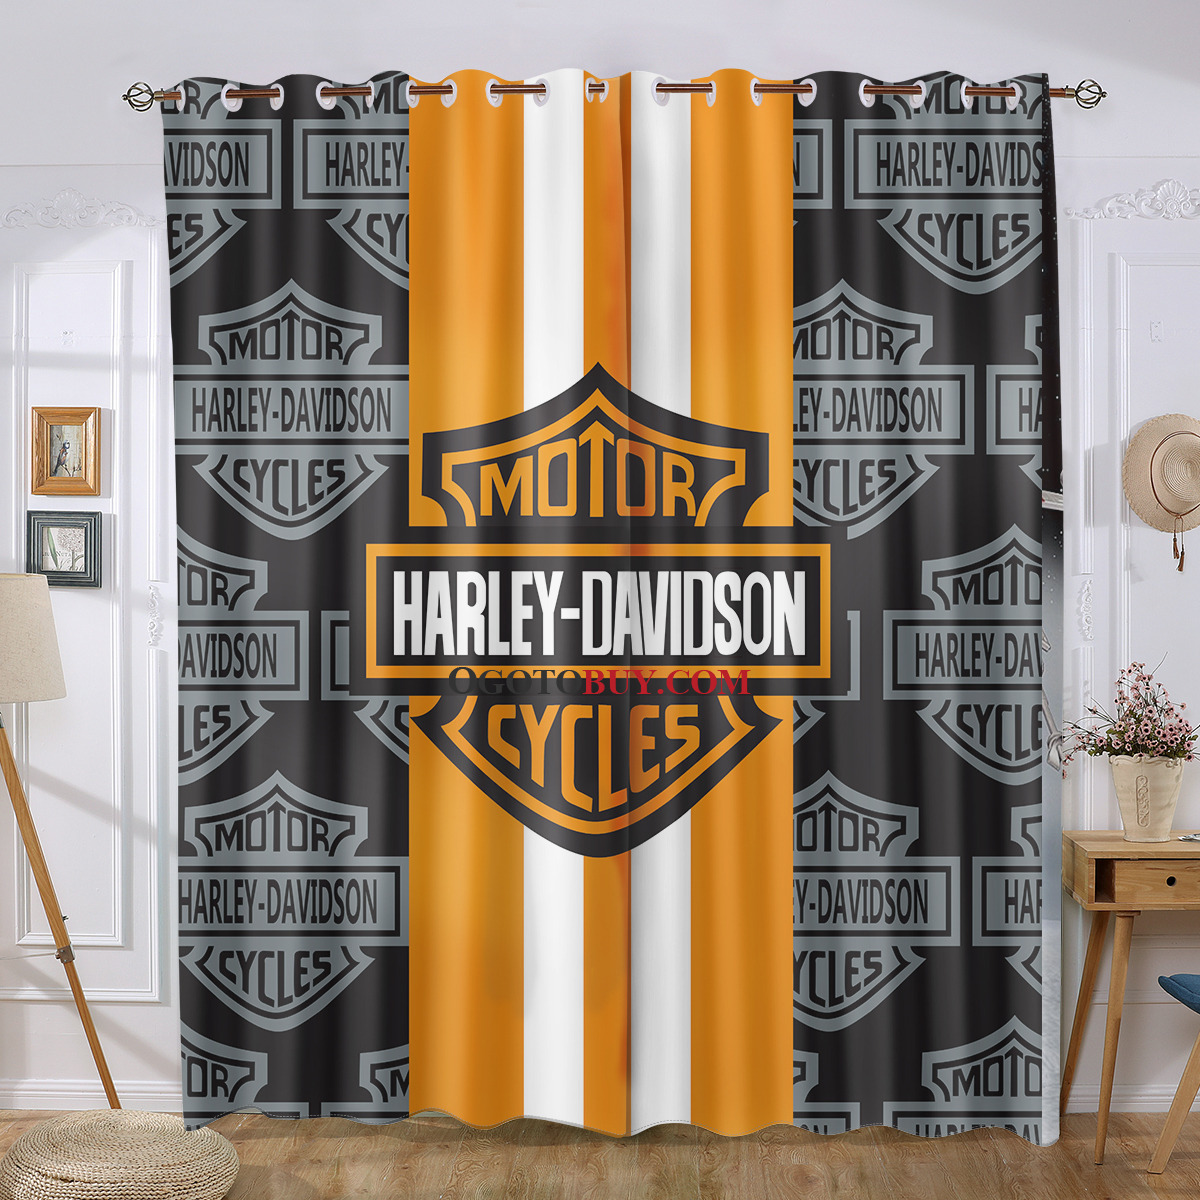 Cheap Stylish Curtains Harley Davidson Cool Curtains Black And Orange Alphabet Stylish